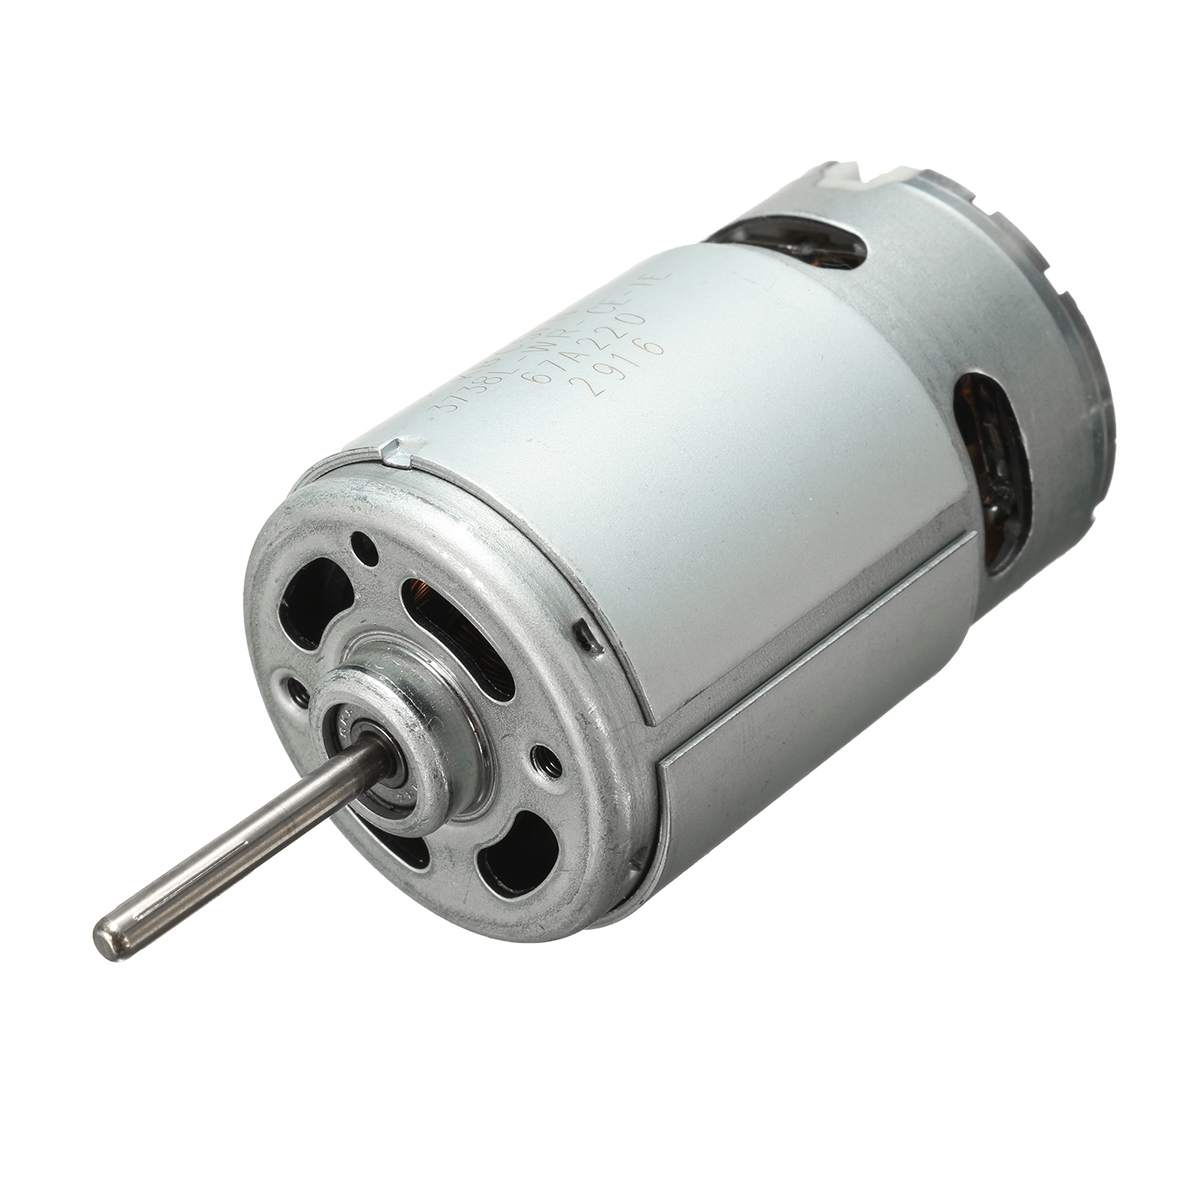 Dc 12 24v ball bearing electric motor 2900rpm large torque for Large dc electric motor